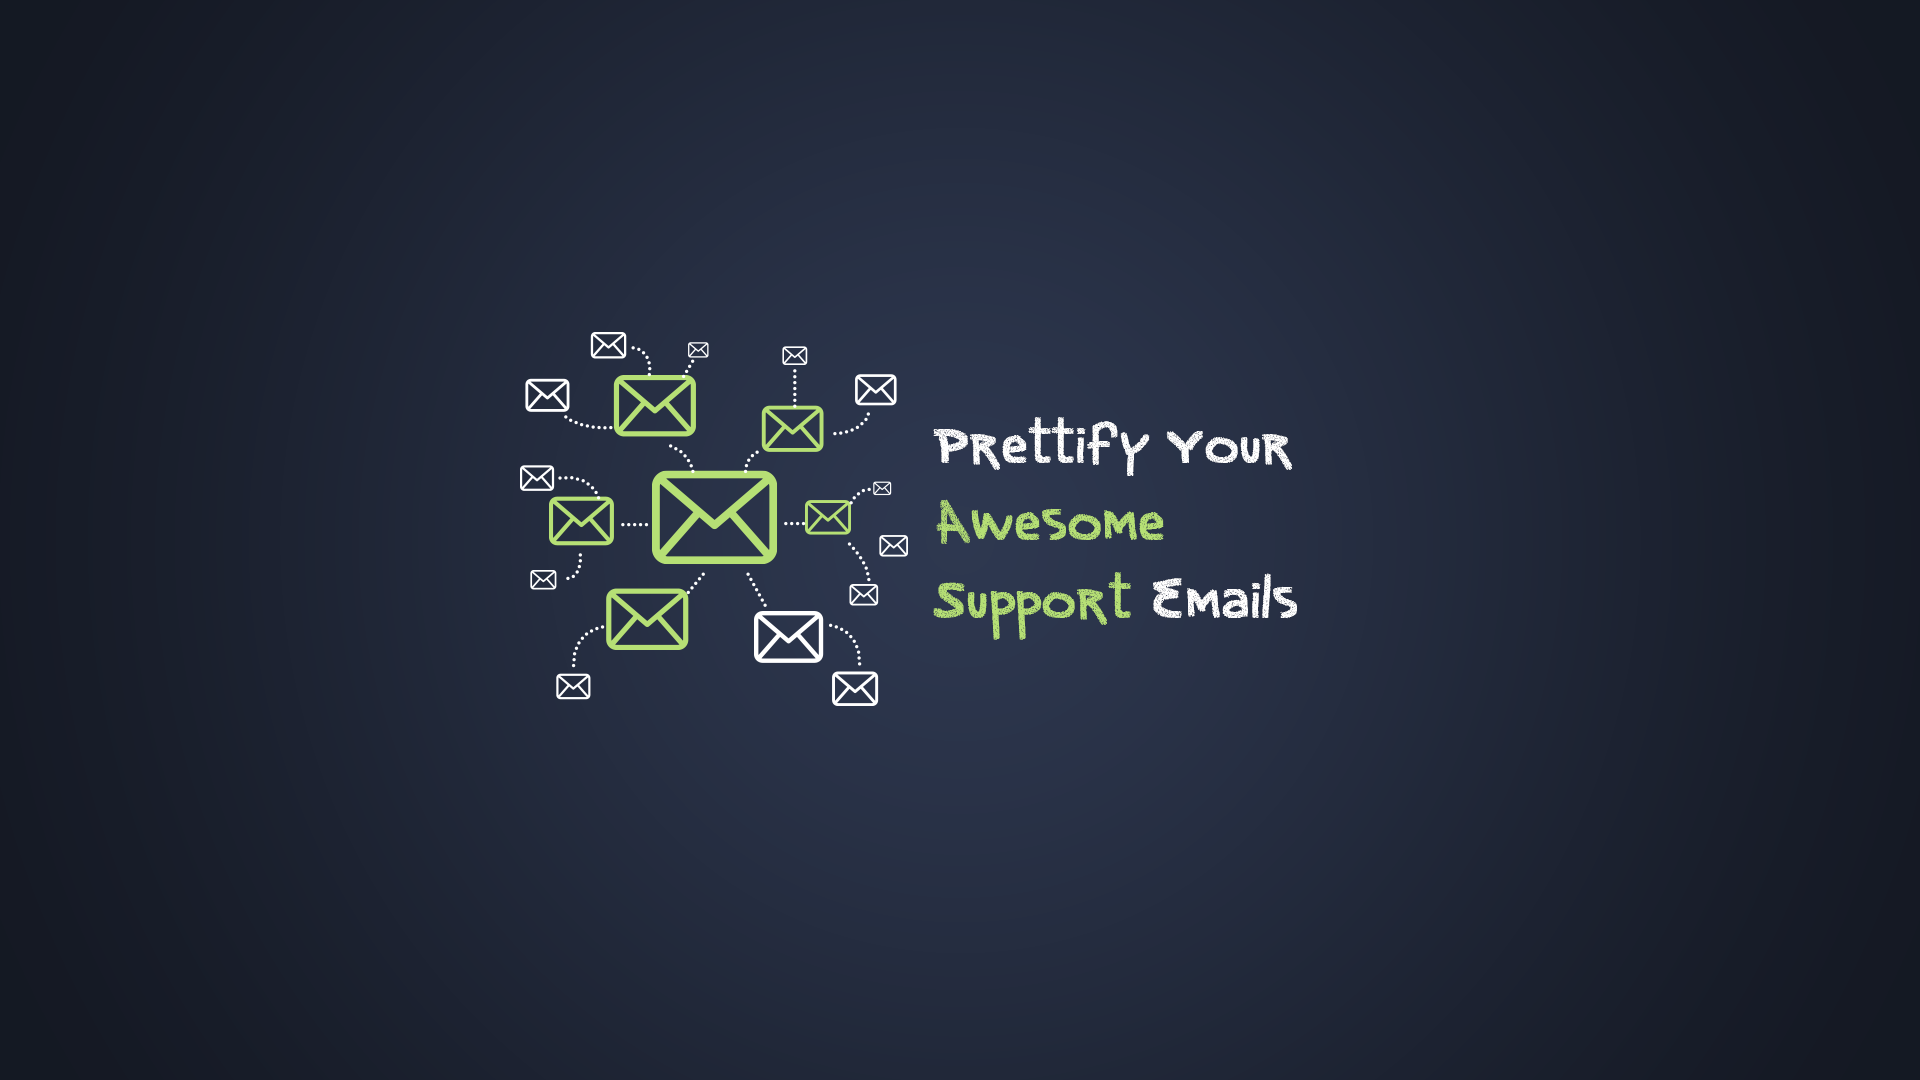 Prettify Your Awesome Support Emails